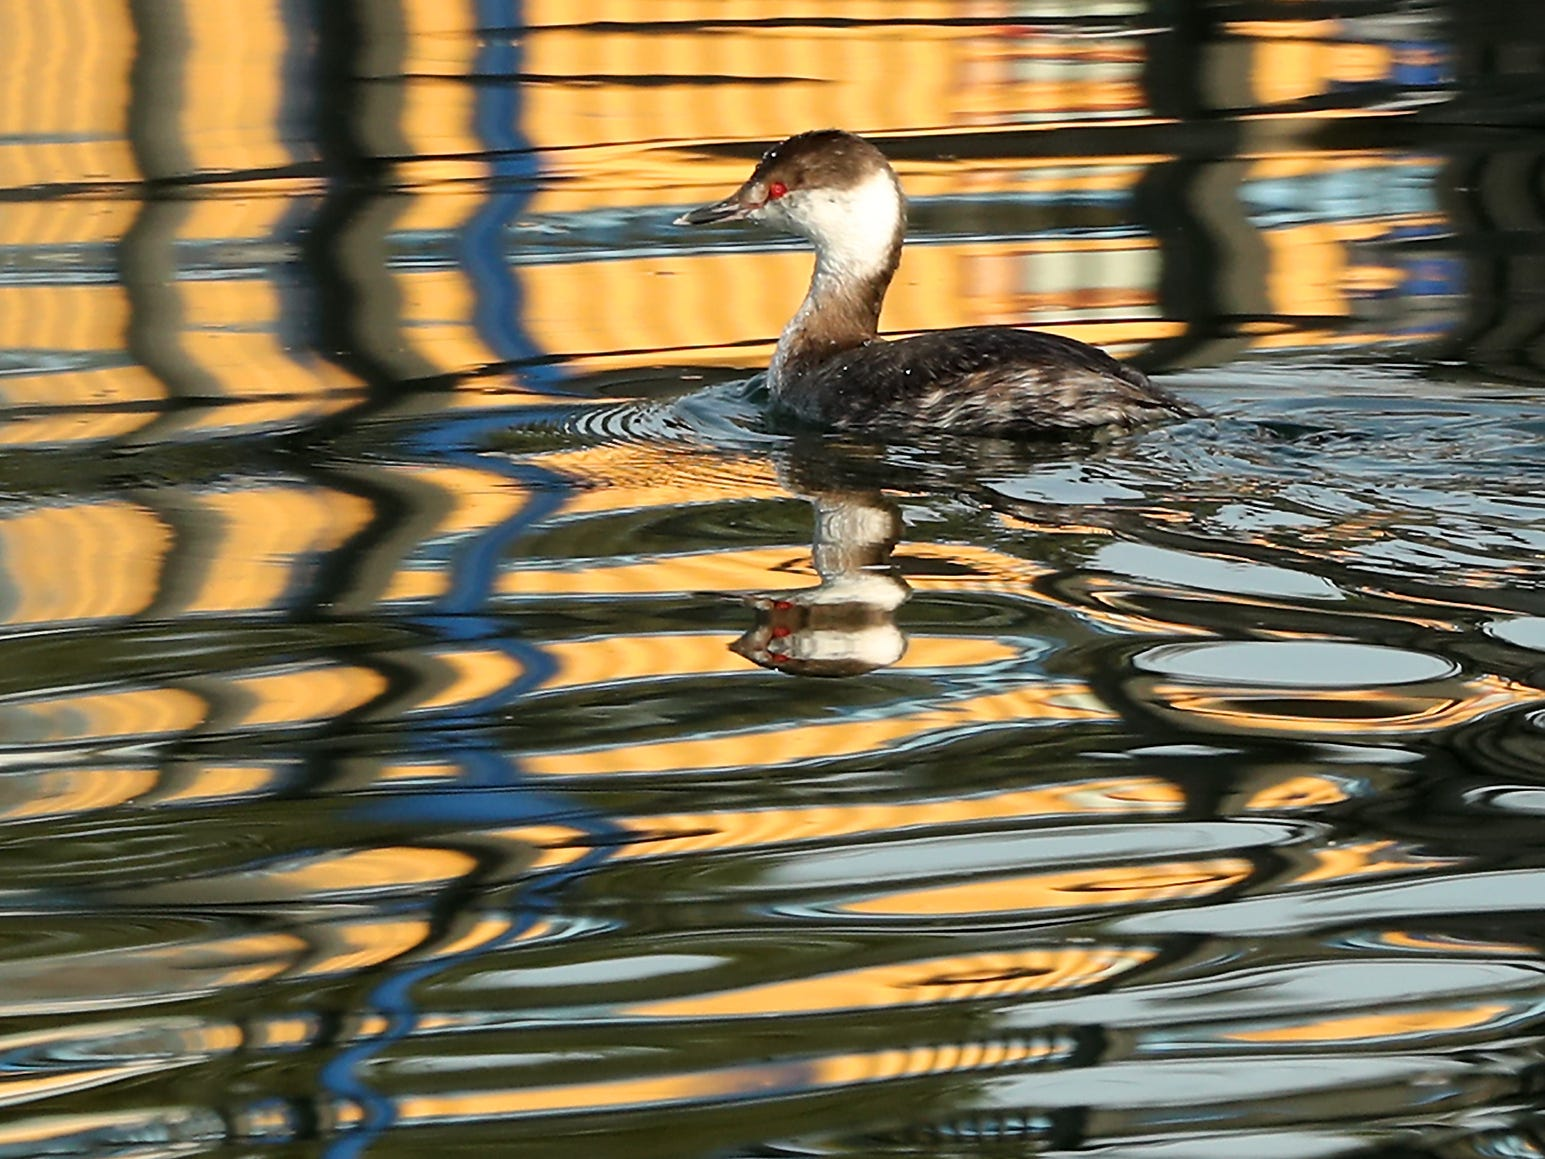 A horned grebe paddles through the reflective waters of the Poulsbo Marina on Friday, March 15, 2019.